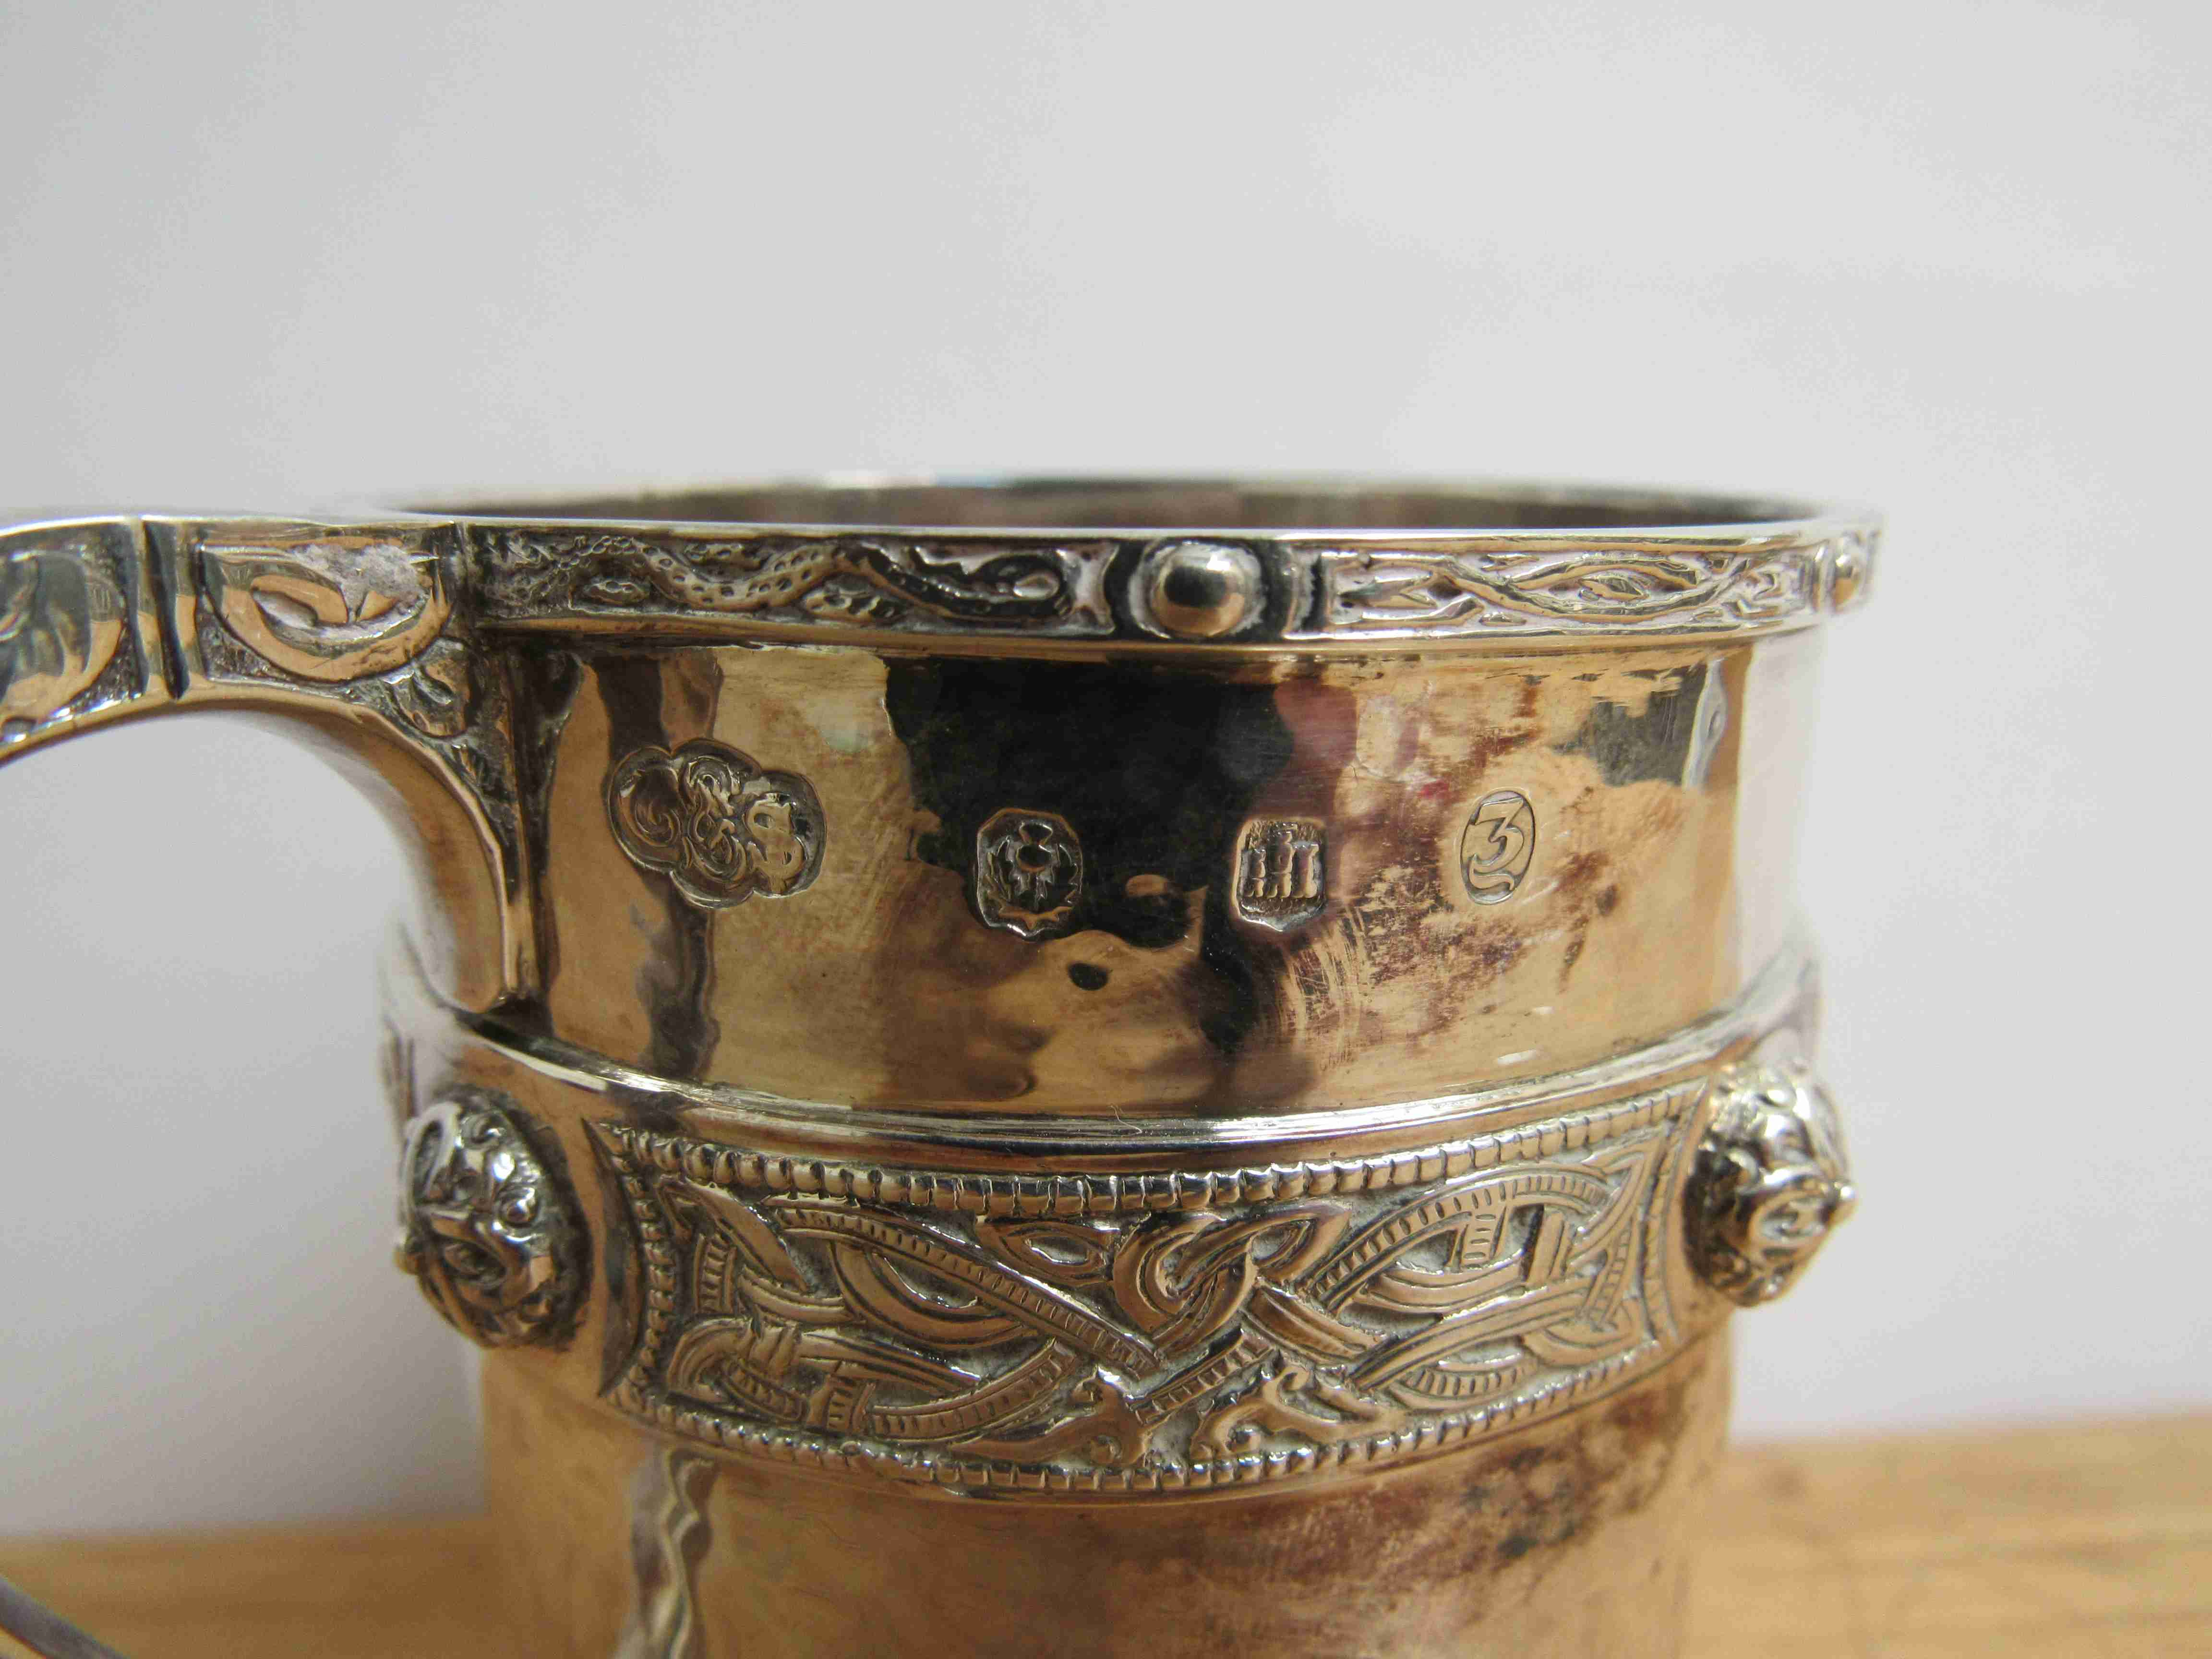 Lot 40 - A Thomas Smith & Sons, Edinburgh silver Celtic design tankard with ornate band, hammered body, 1905,